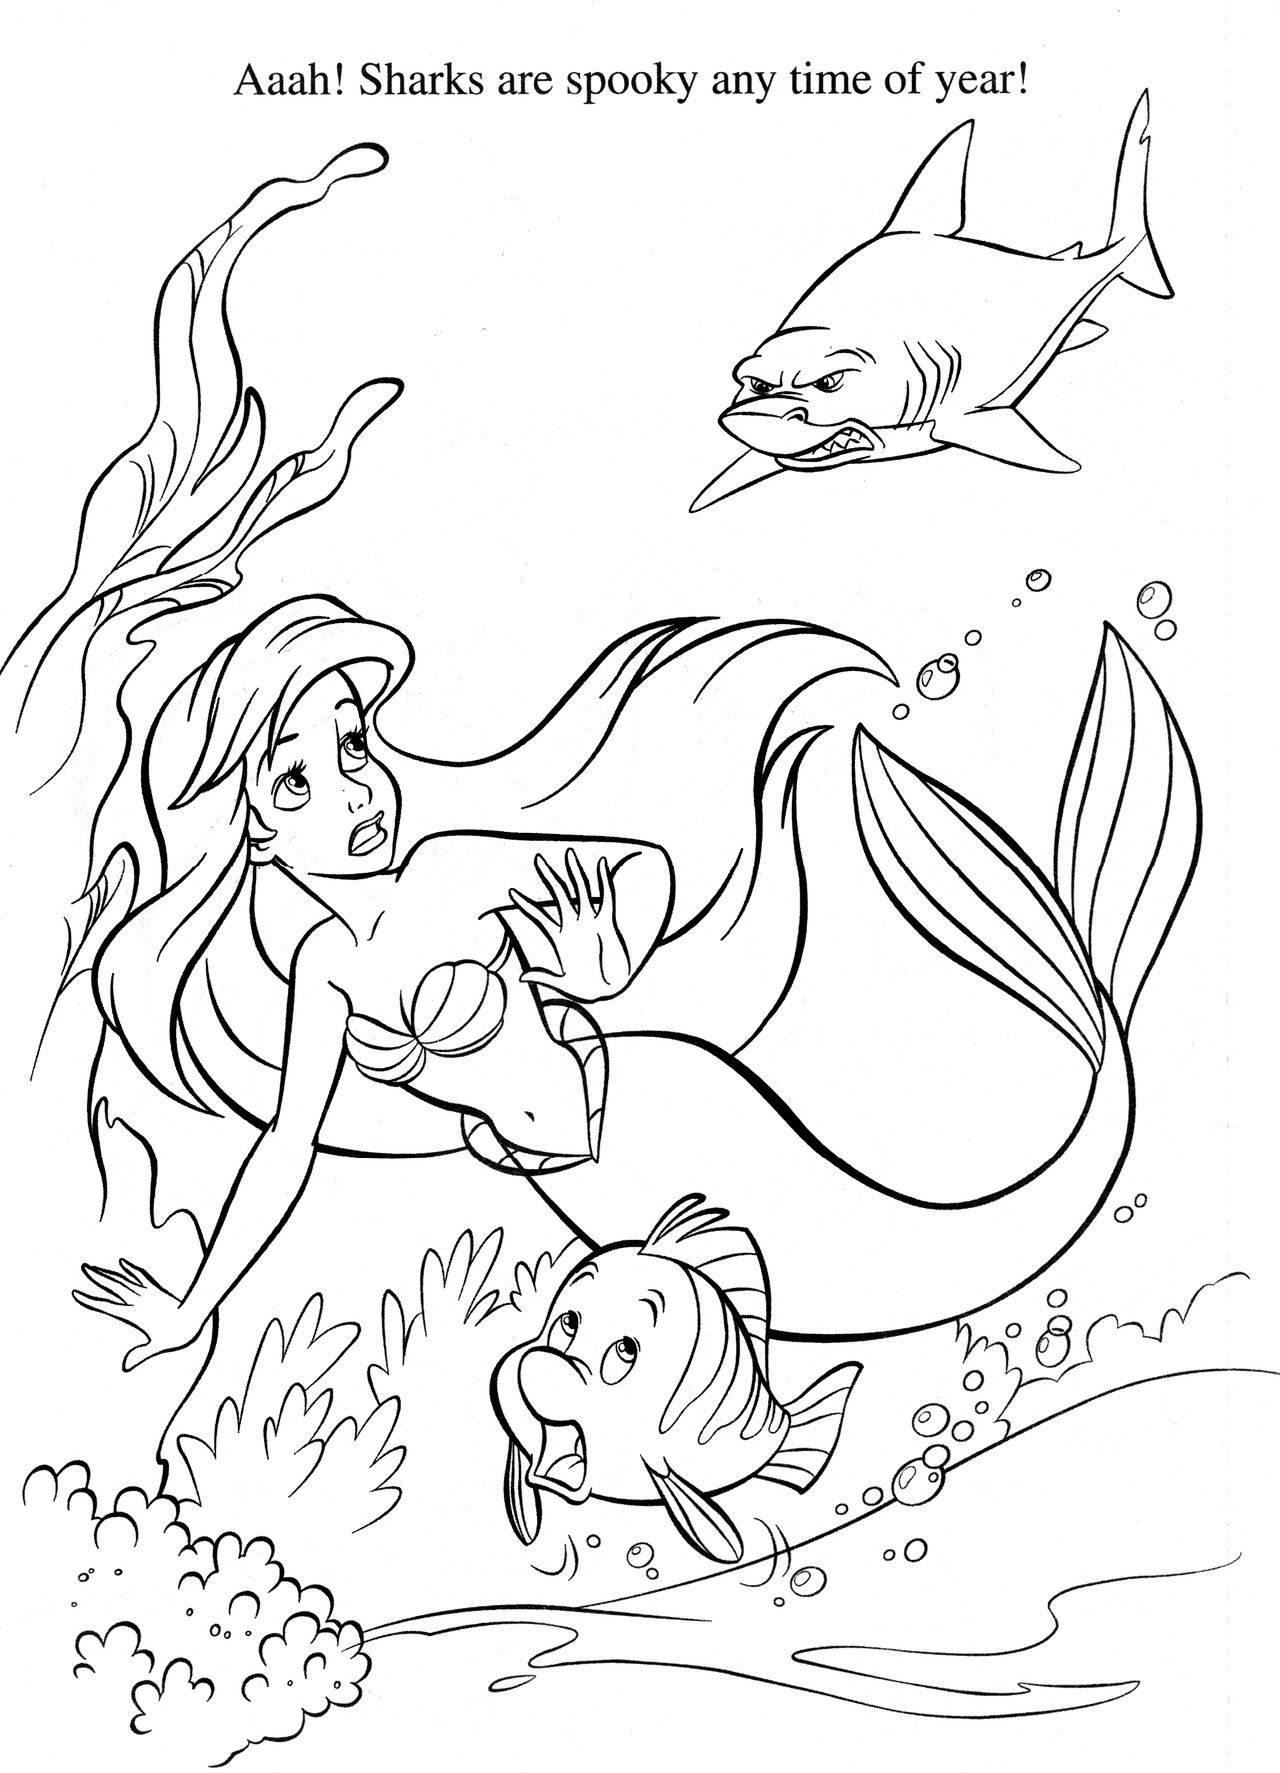 The Little Mermaid Coloring Page Youngandtae Com Disney Coloring Pages Mermaid Coloring Pages Shark Coloring Pages